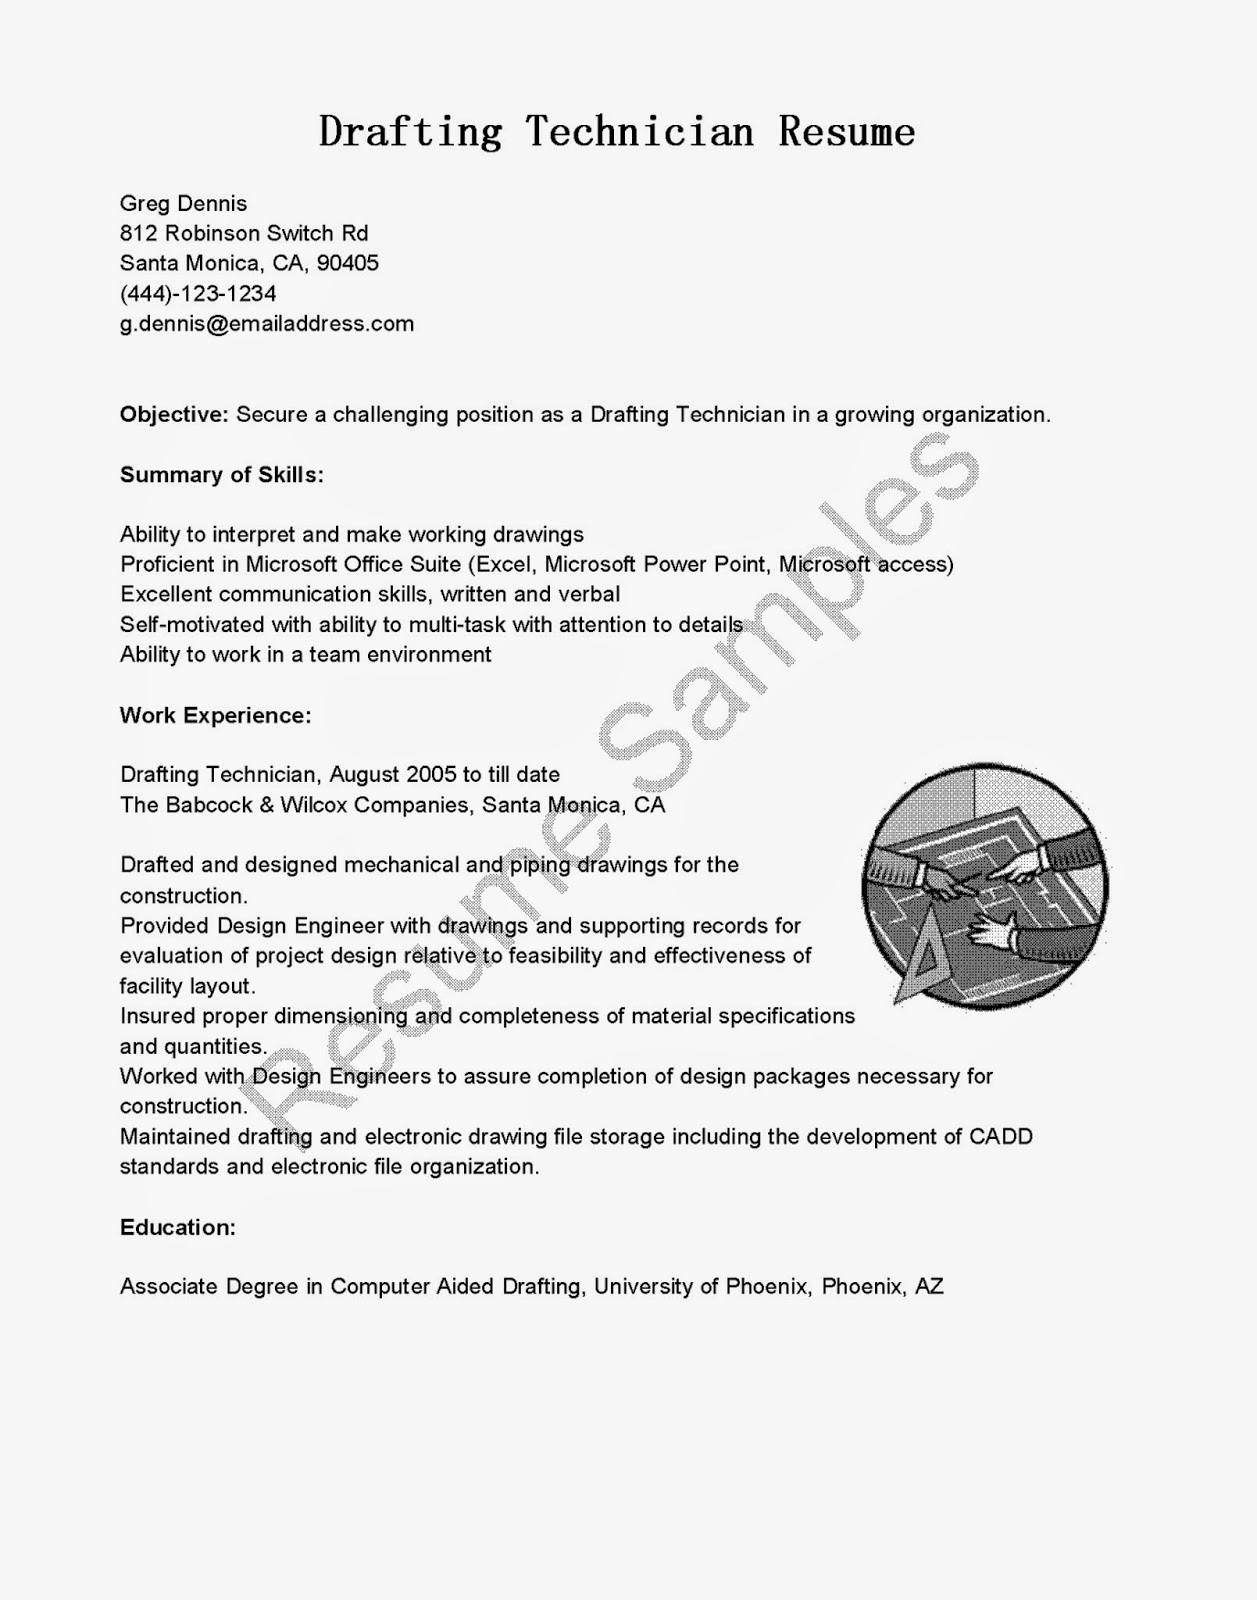 Cad Drafter Cover Letter The Format Of A Resume Drafter Cover Letter Images  Cover Letter Sample  Autocad Drafter Resume